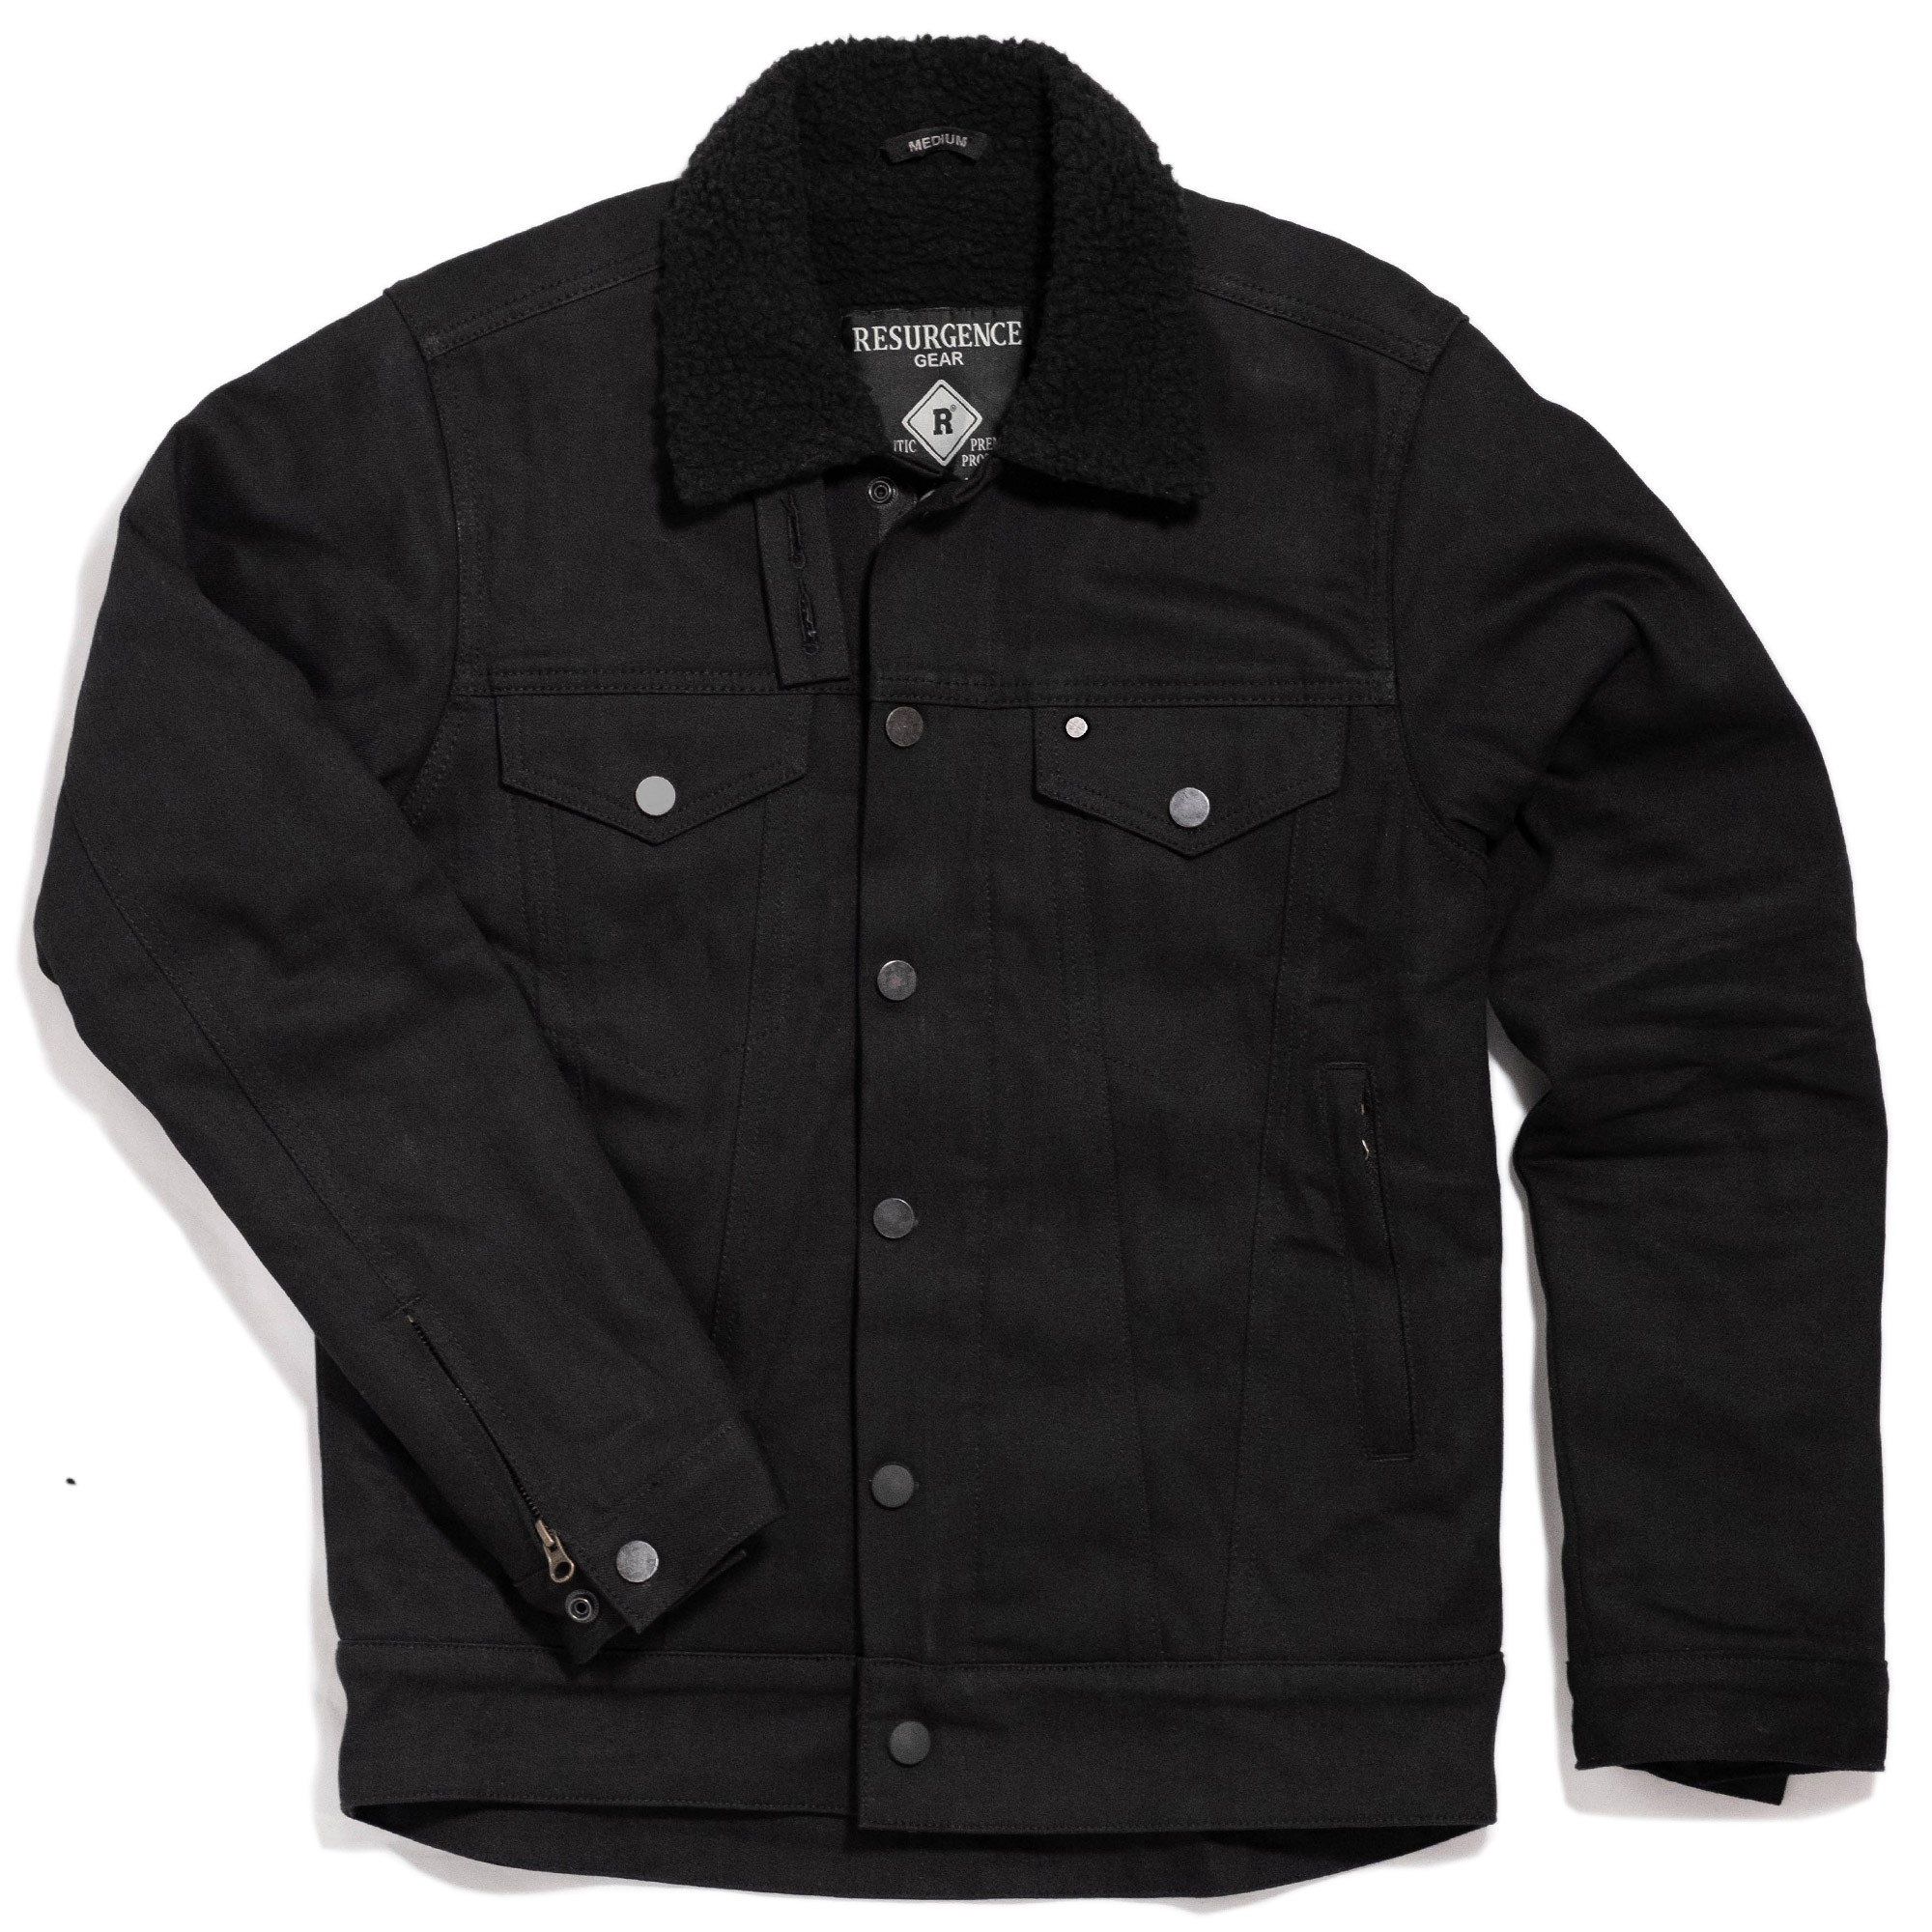 SHERPA JACKET : BLACK